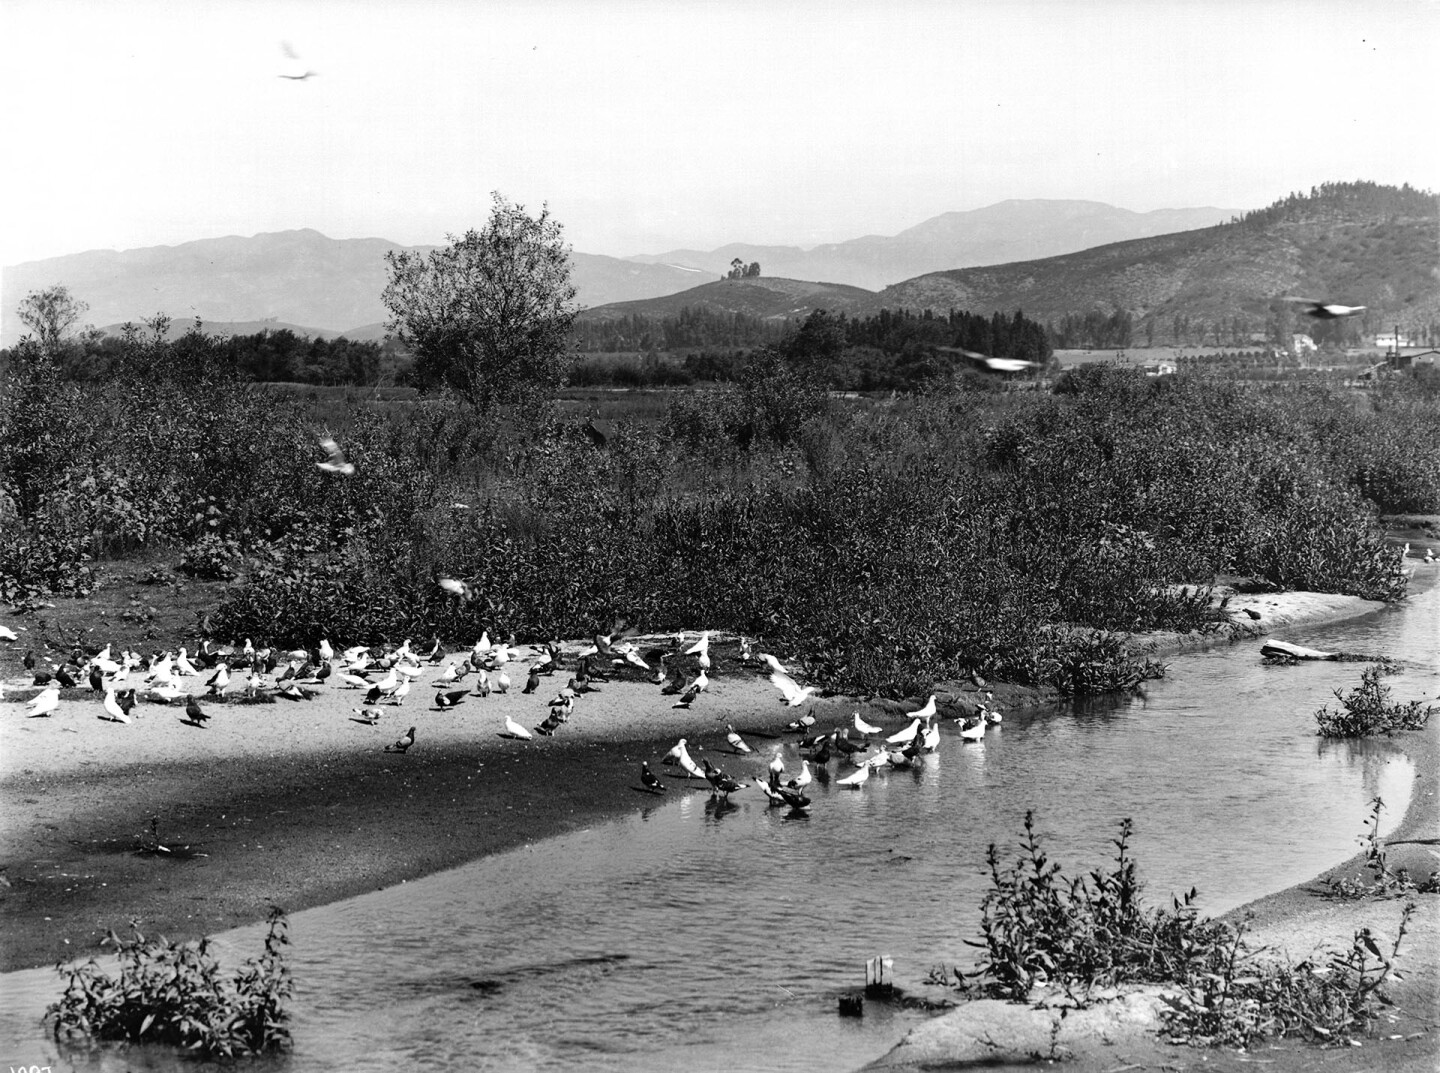 Pigeons bathe in the very river that would eventually claim their lives